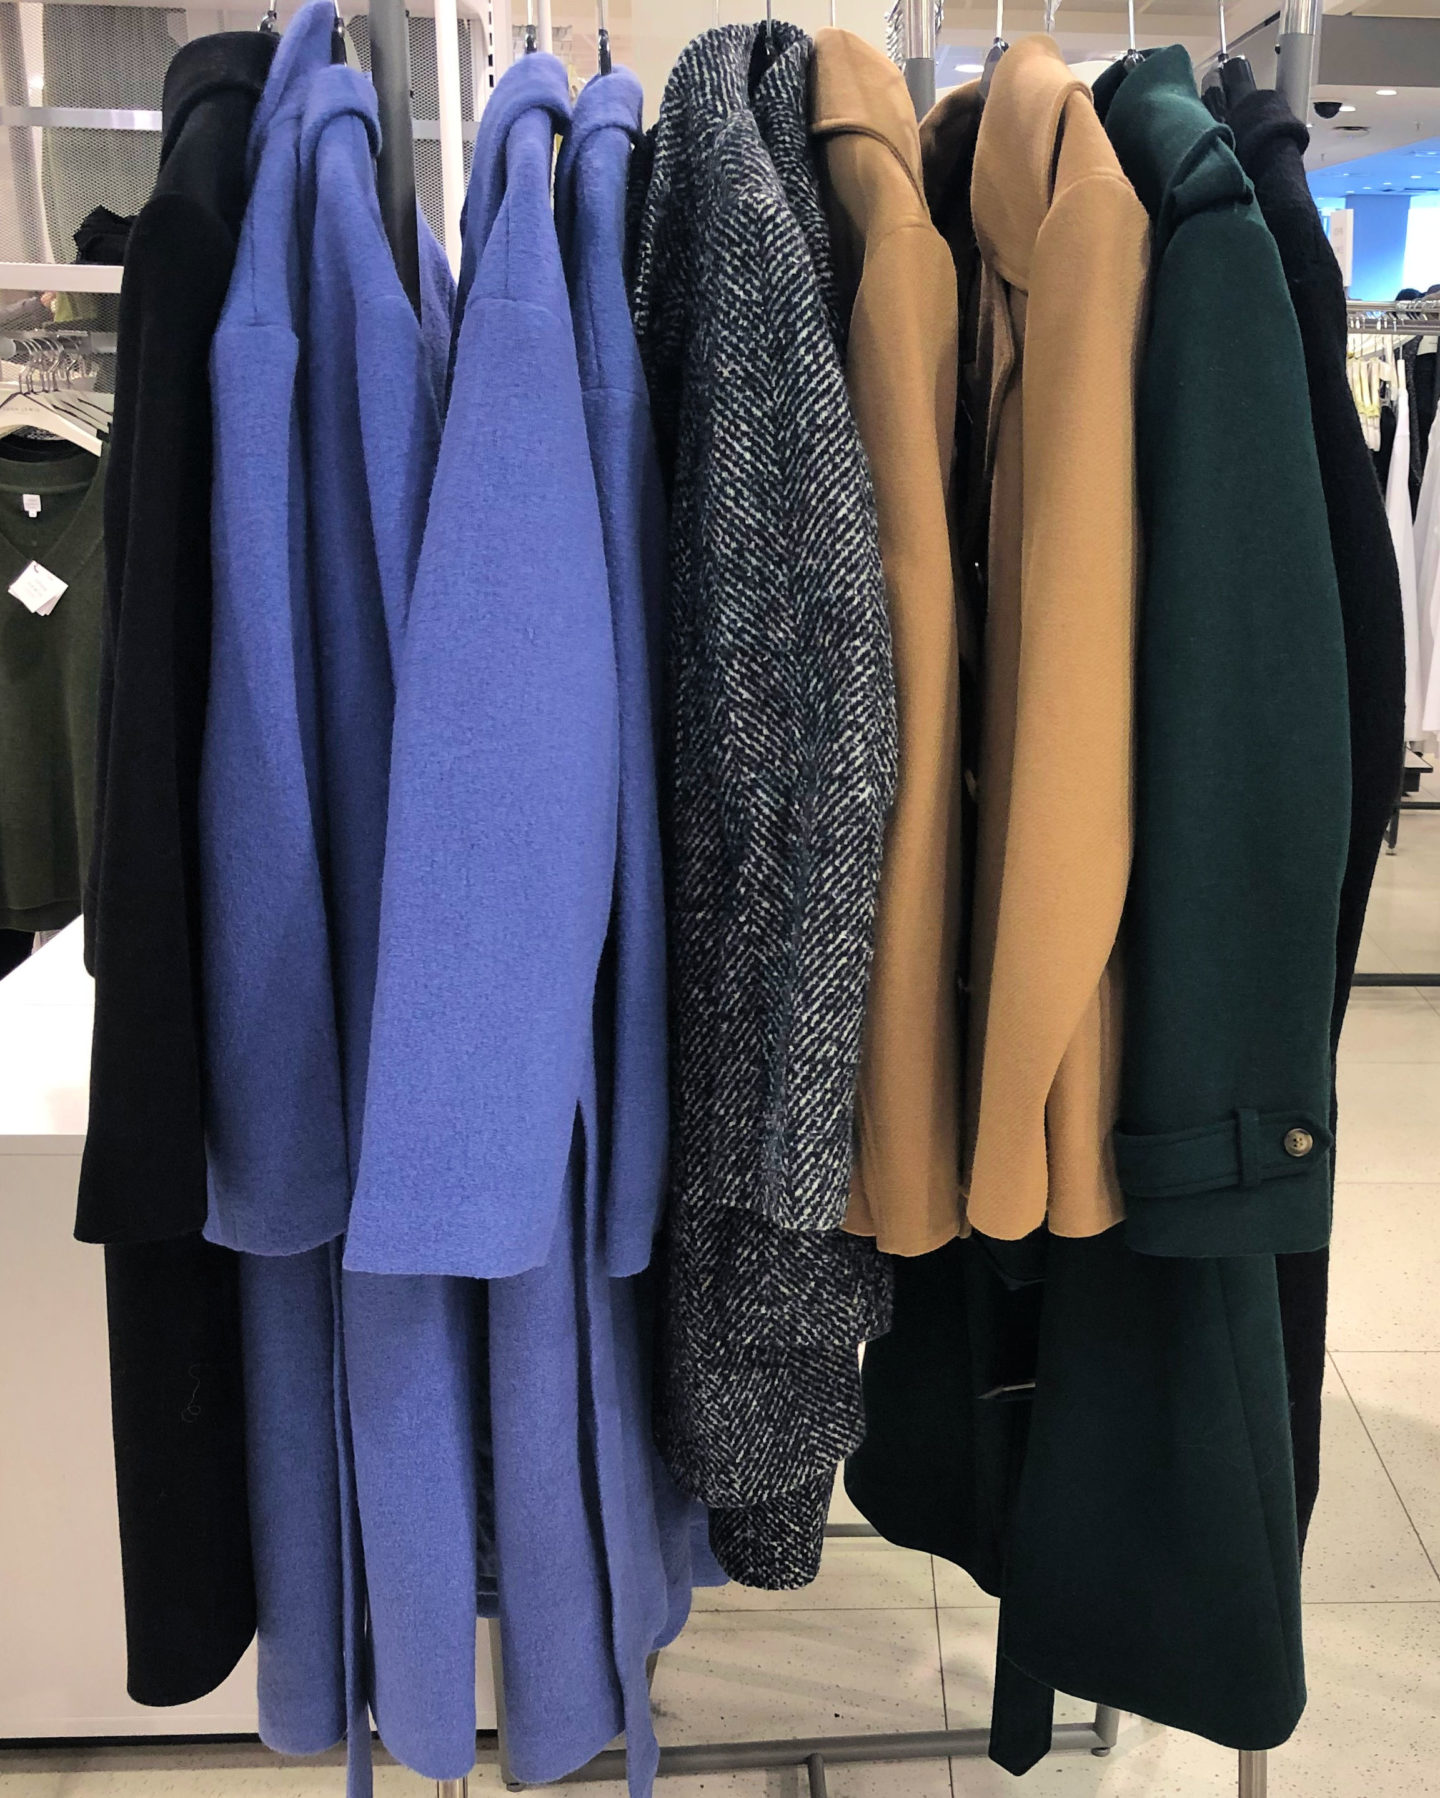 Bright blue and neutral coats